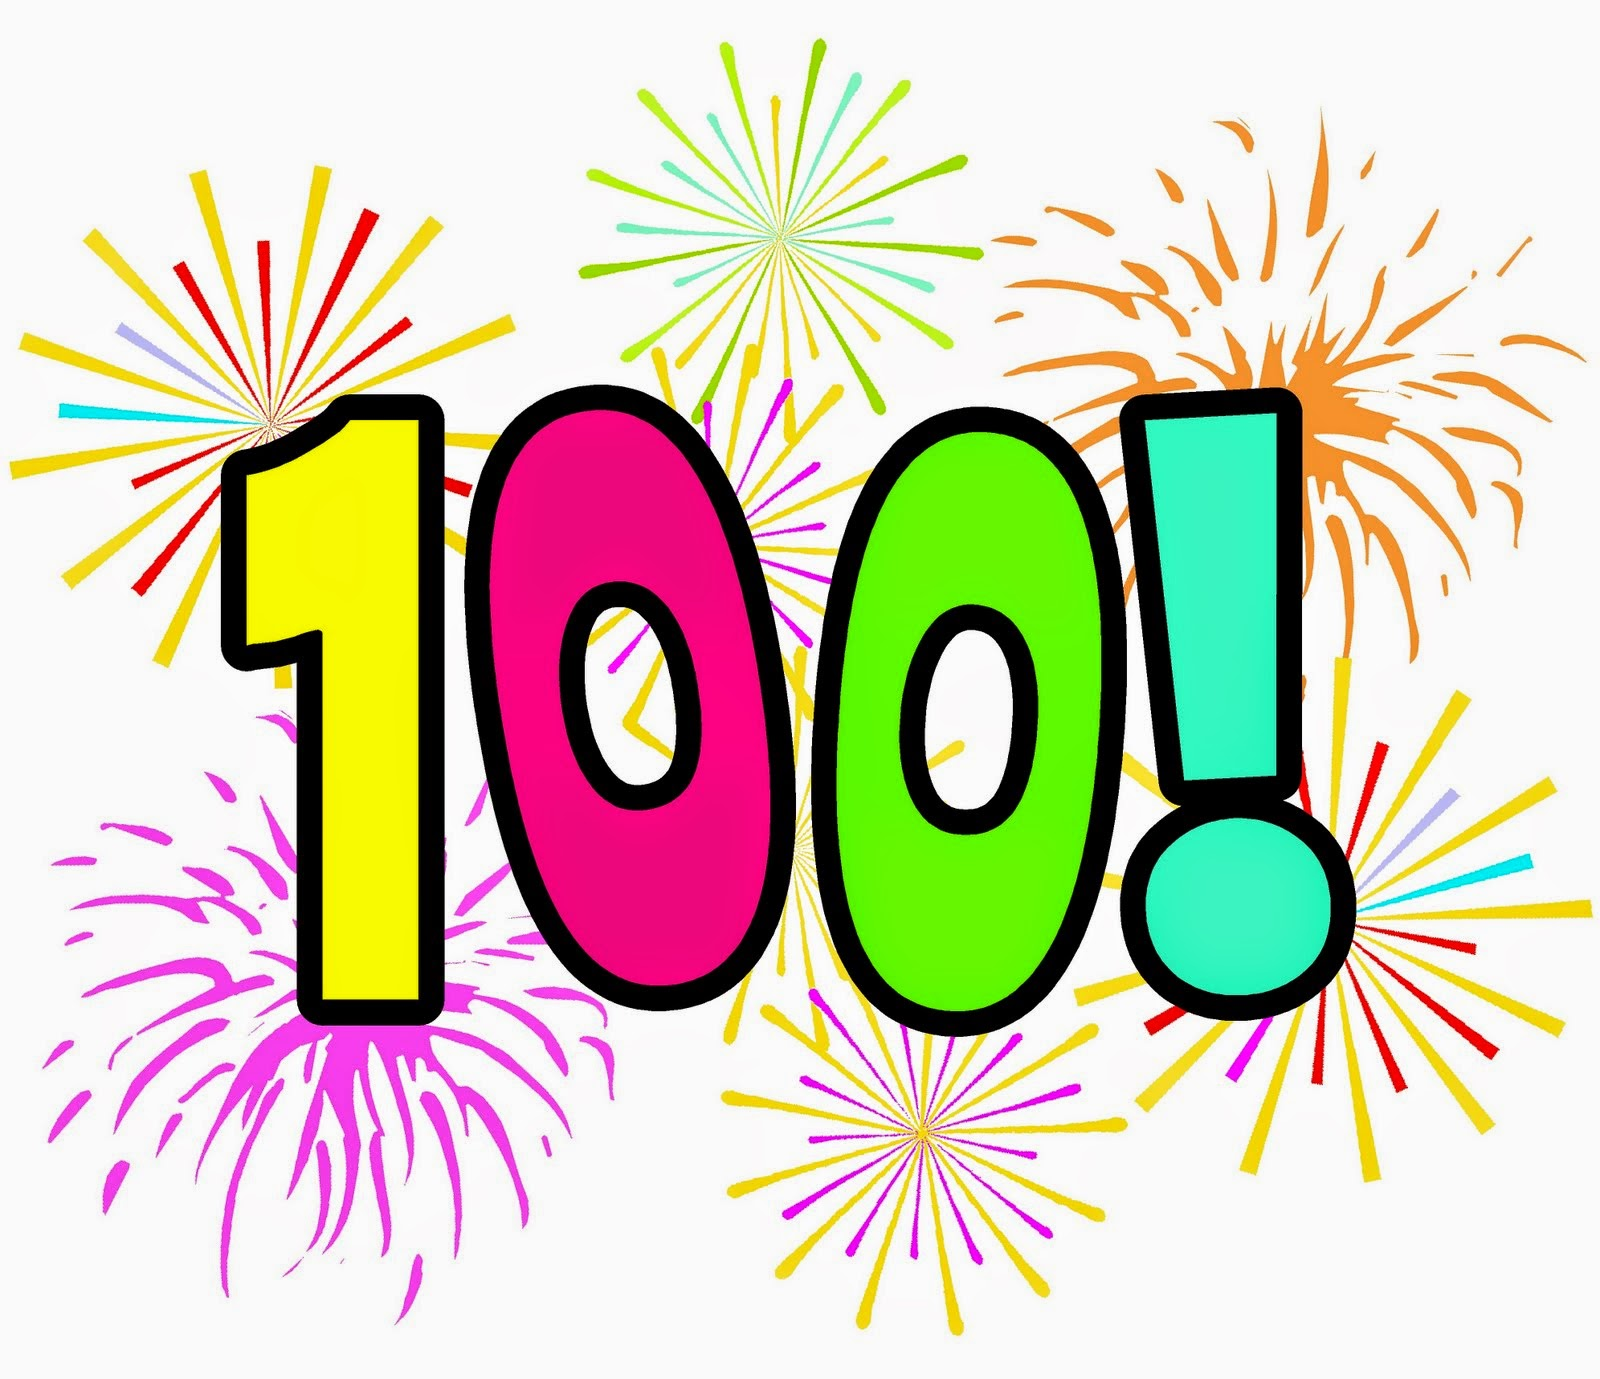 100 Day Clipart Free.